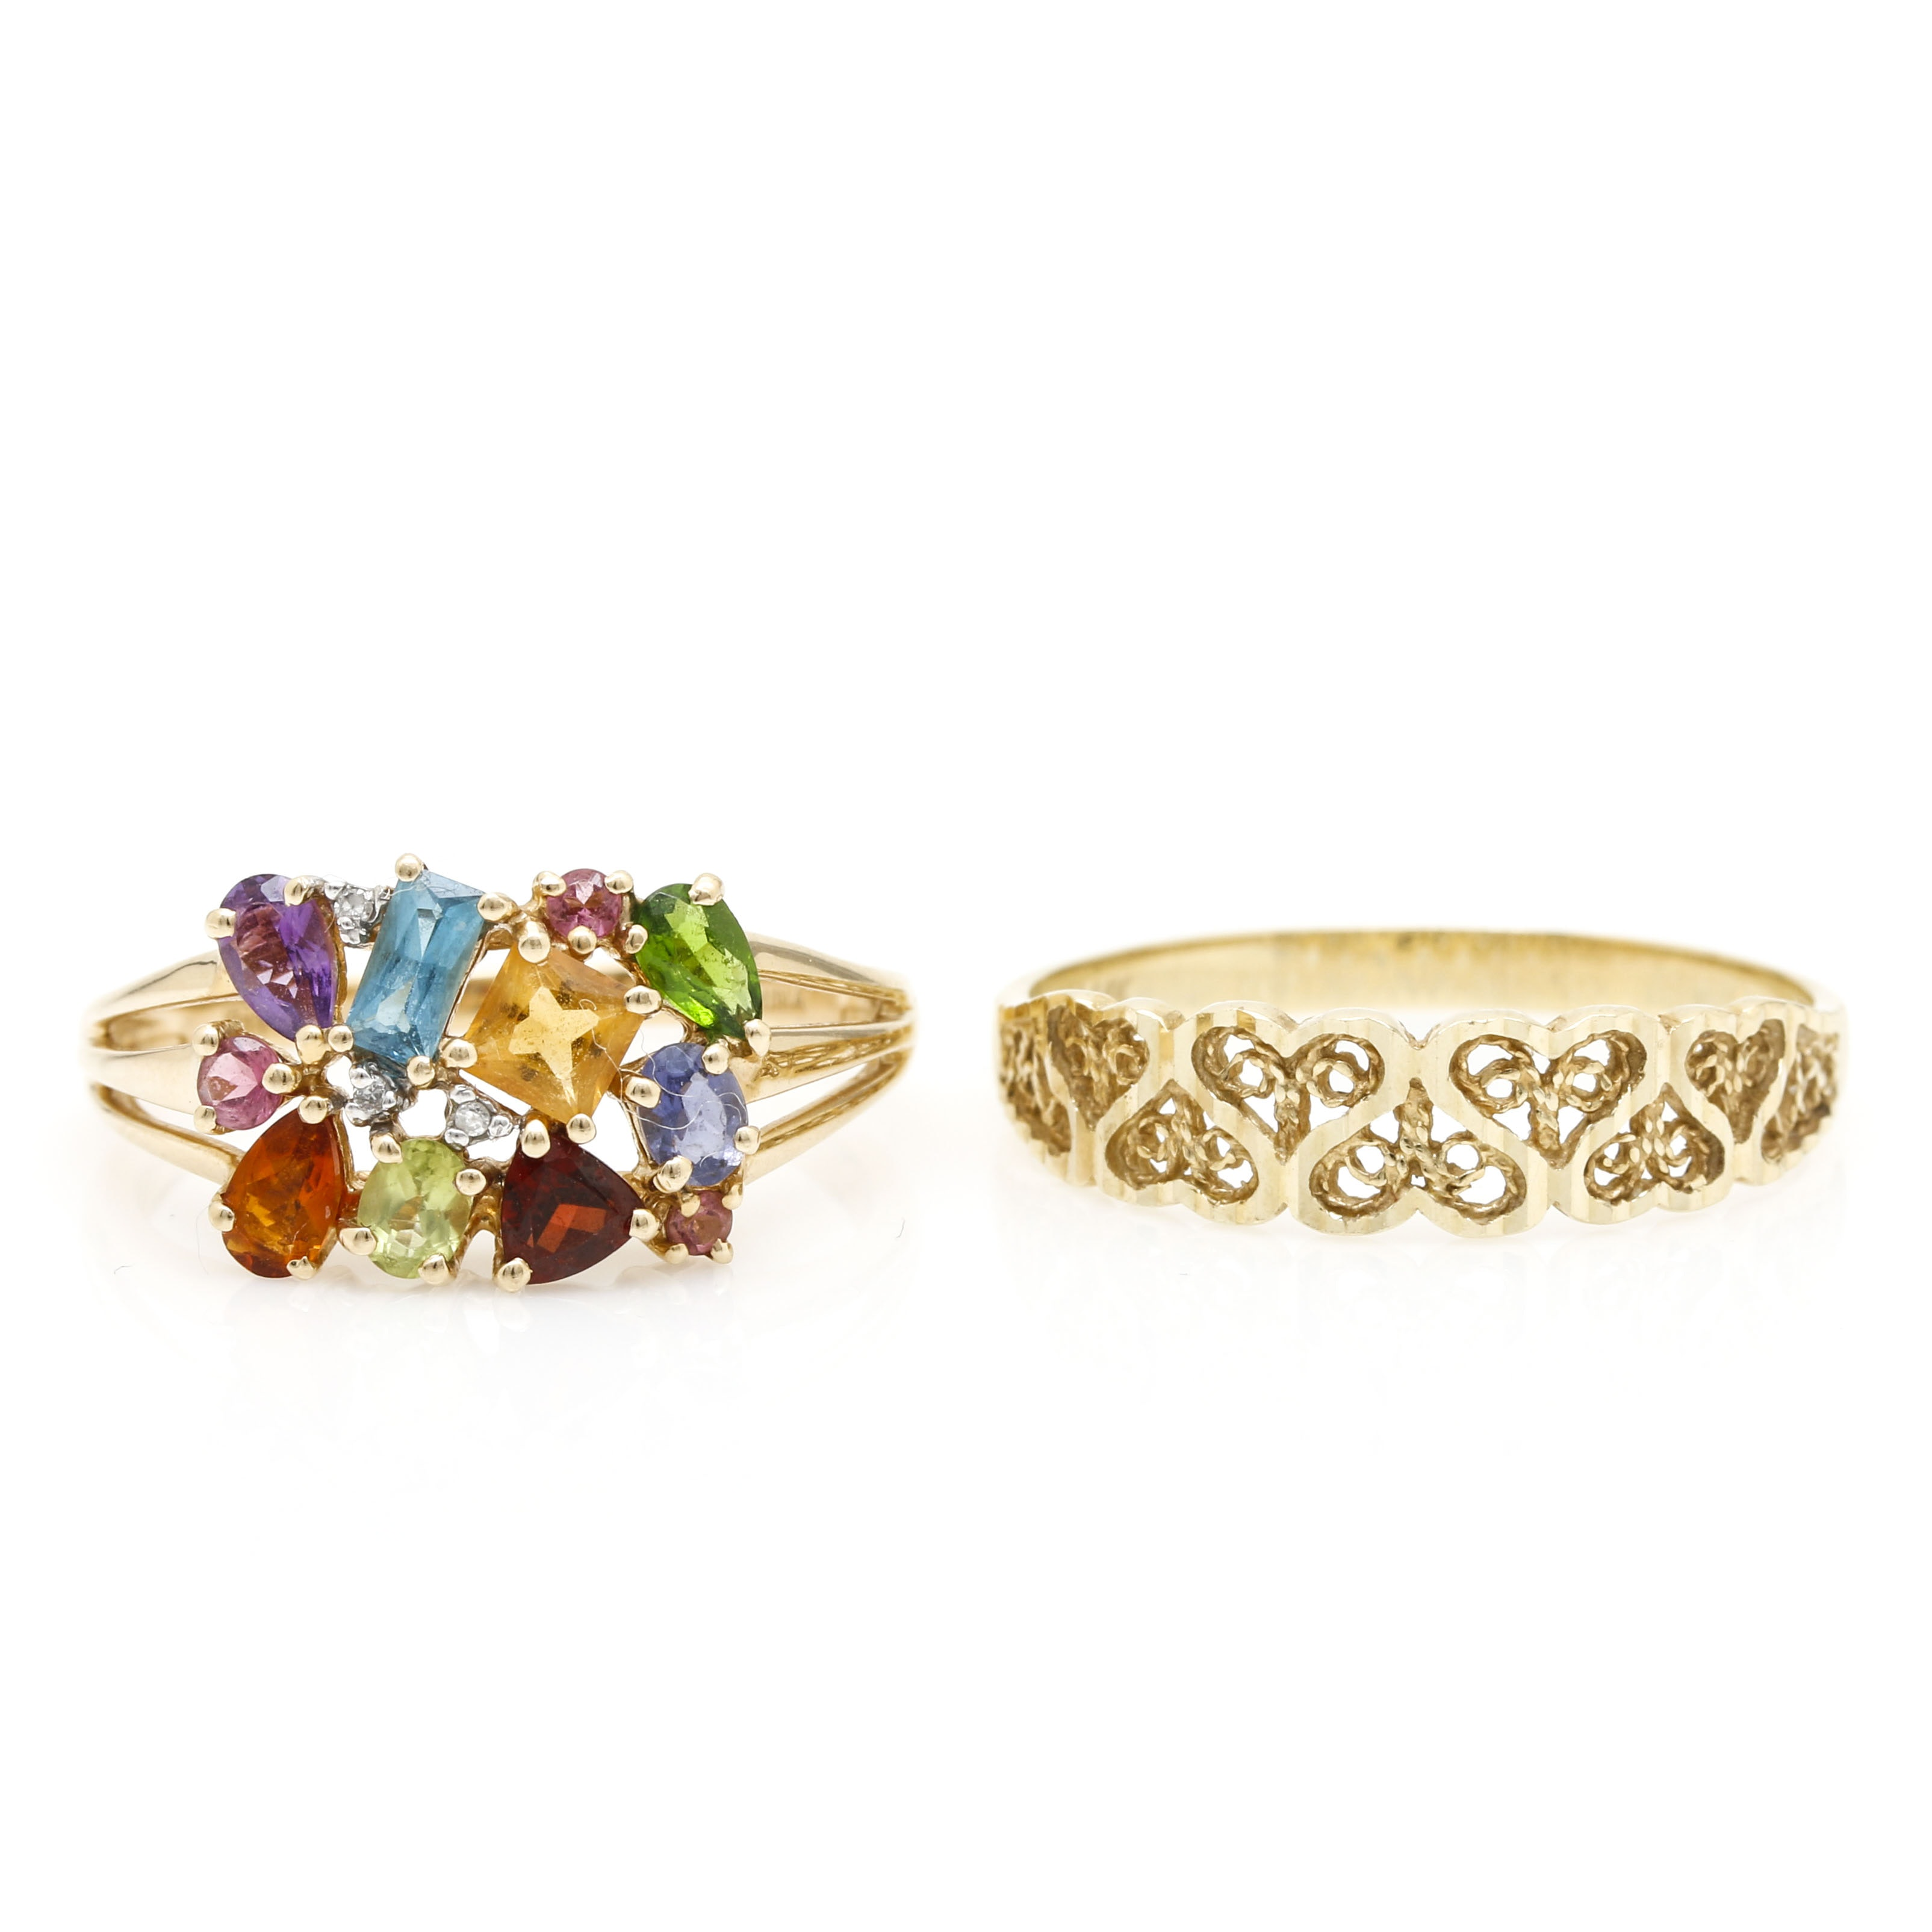 14K Yellow Gold and Gemstone Rings